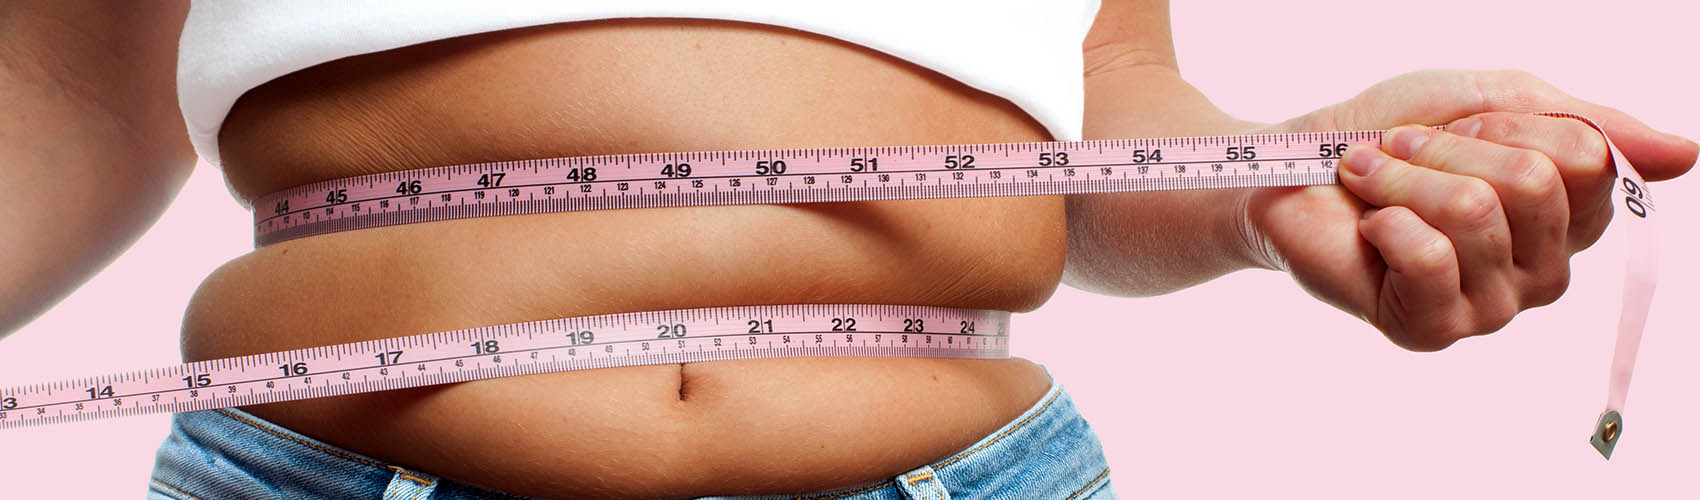 How to Calculate Your BMI?